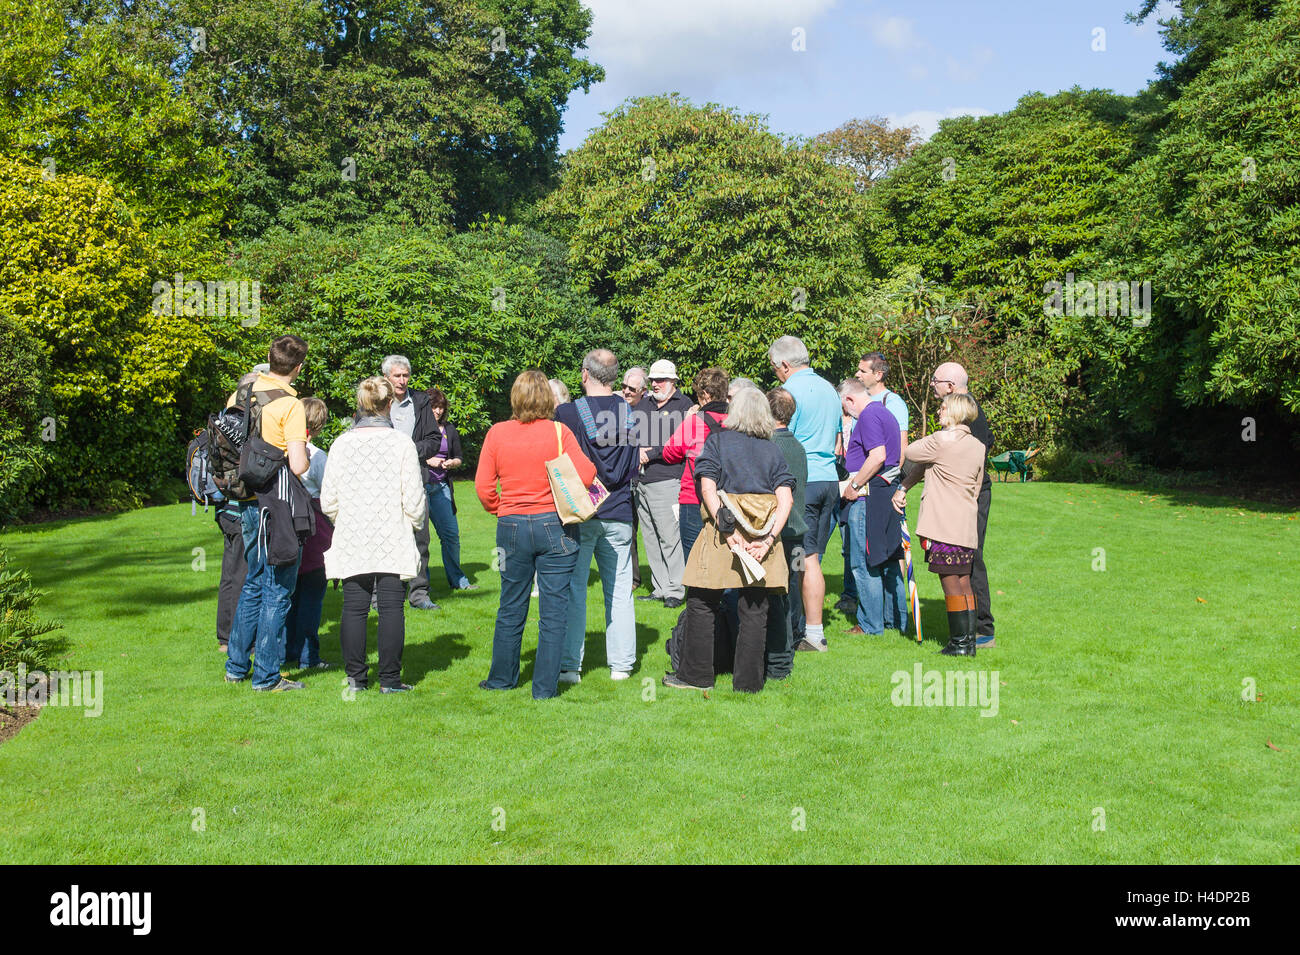 Garden guide addressing a group of visitors to the Lost Gardens of Heligan in Cornwall - Stock Image